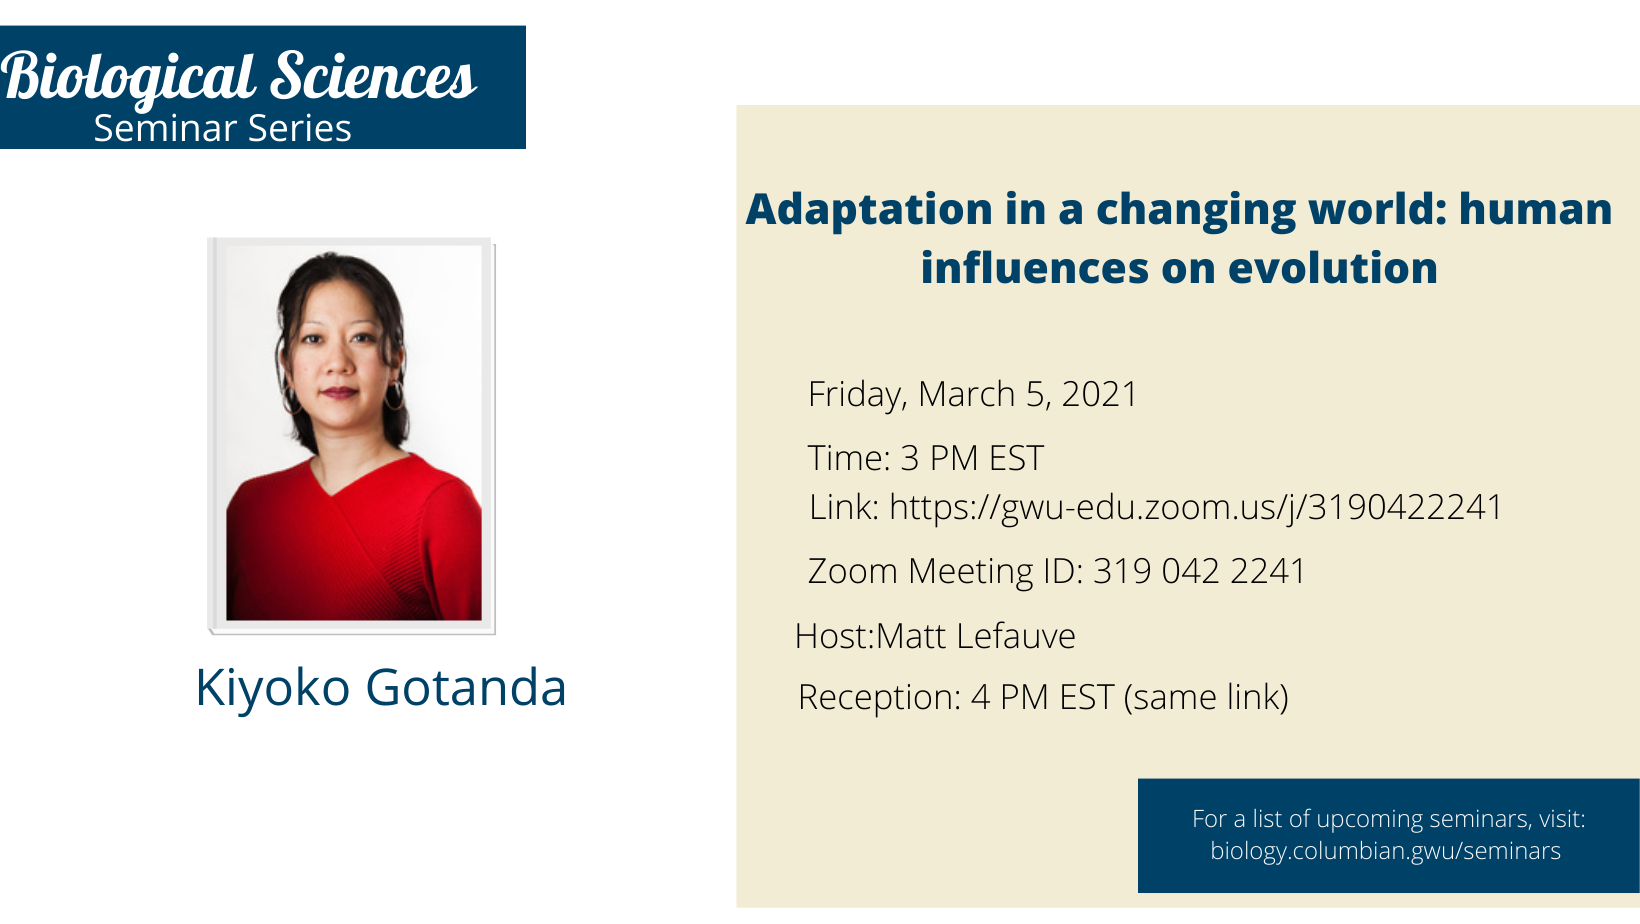 Biological Sciences: Seminar Series | Adaption in a changing world: human influences on evolution | Friday, March 2021 | Time: 3PM EST